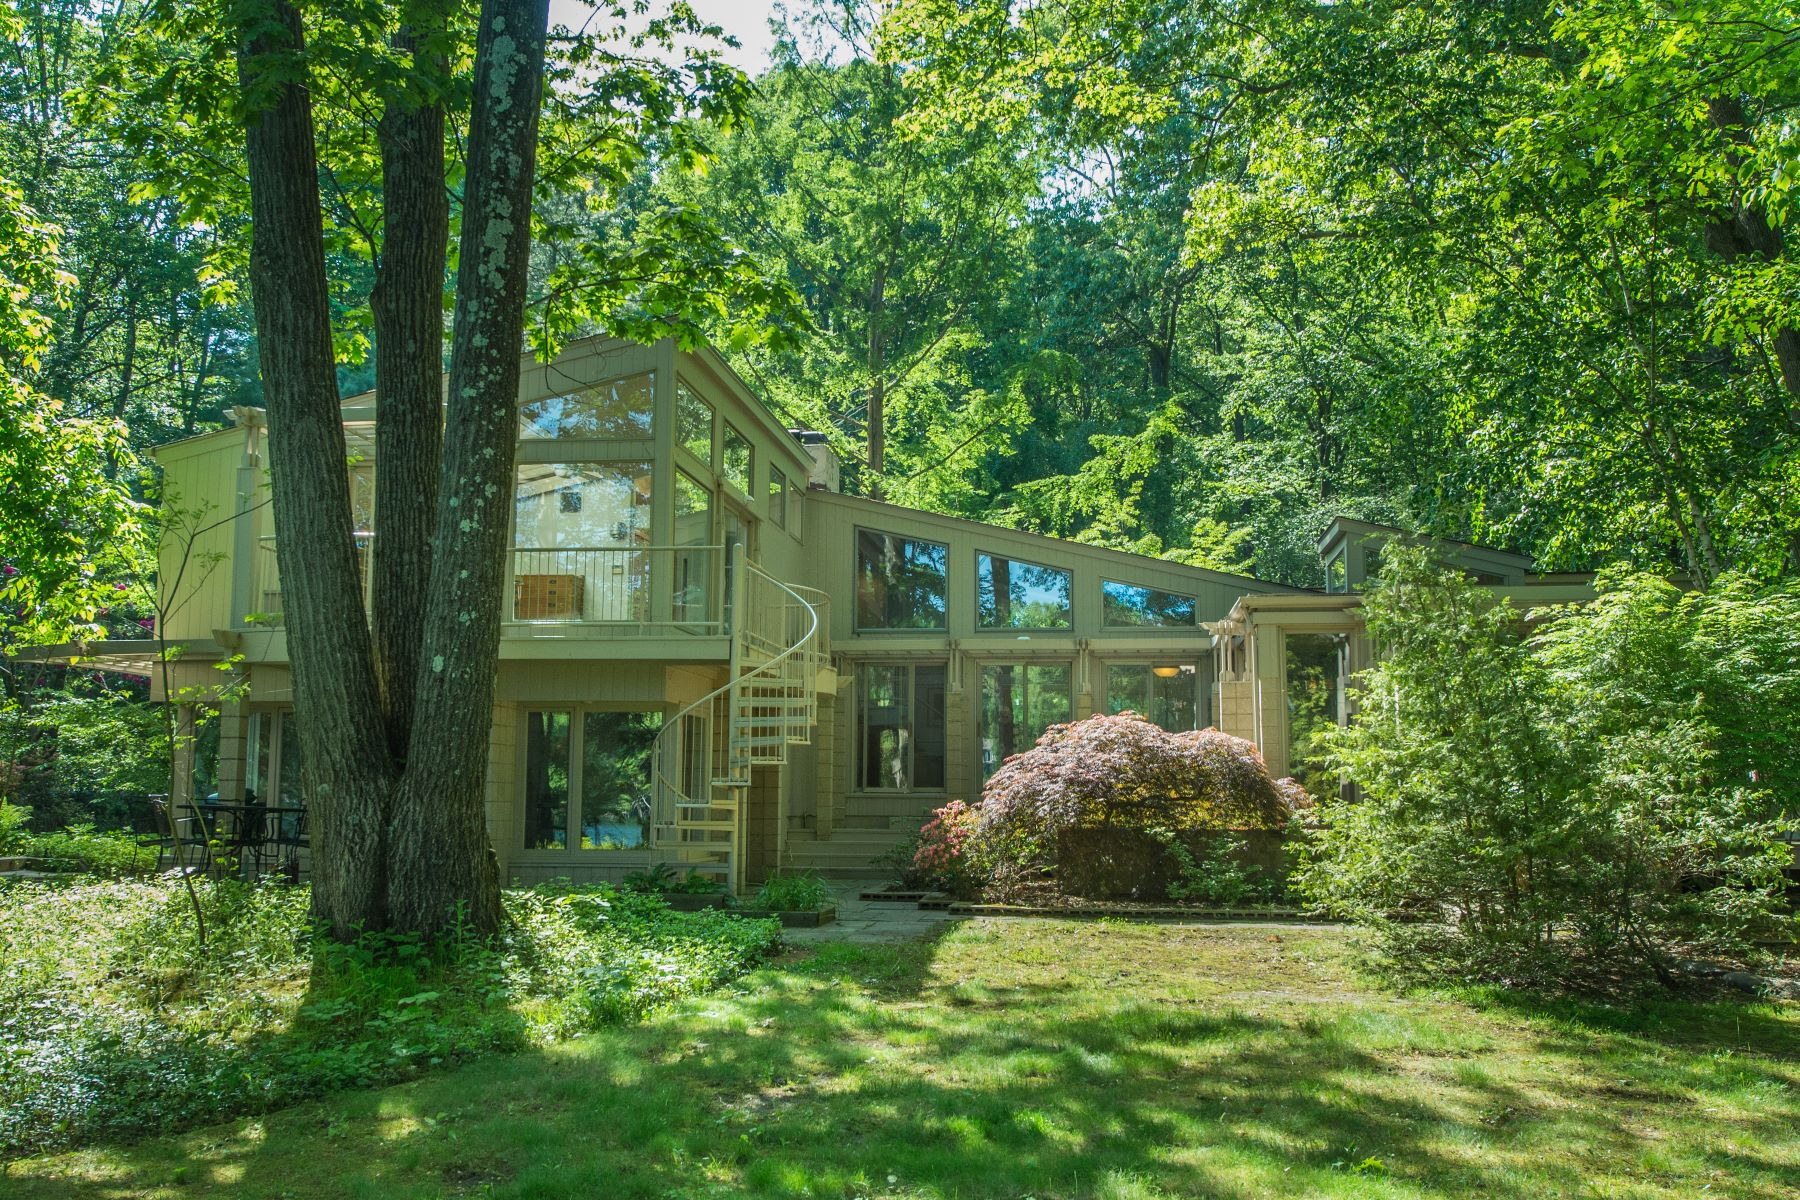 Single Family Homes for Sale at Lakefront Property 34 W Shore Road Mountain Lakes, New Jersey 07046 United States